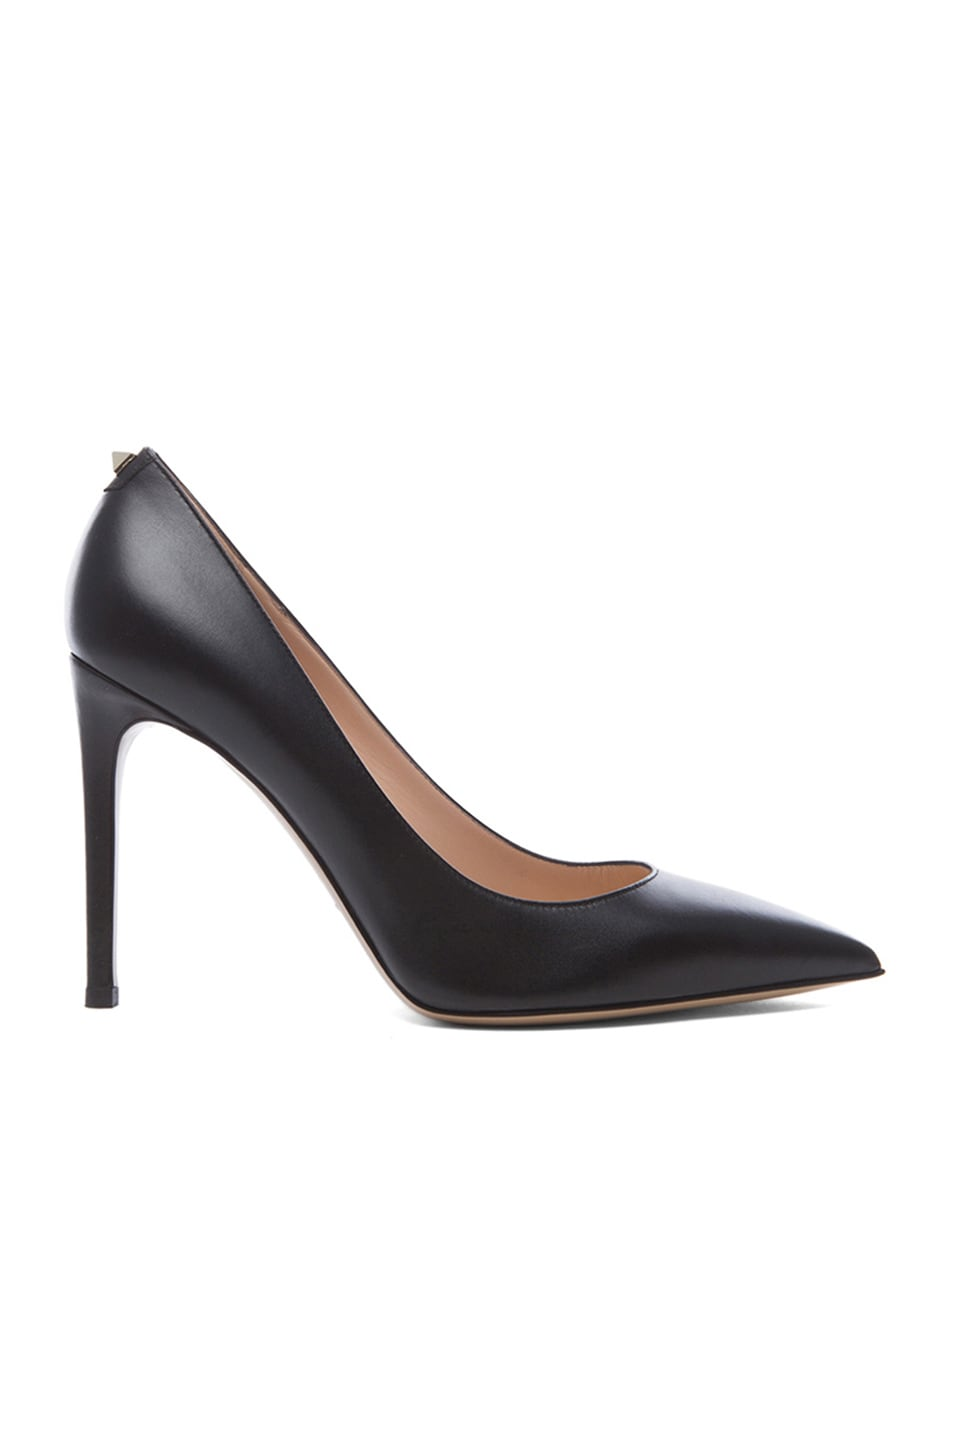 Image 1 of Valentino New Plain Leather Pumps T.100 in Nero